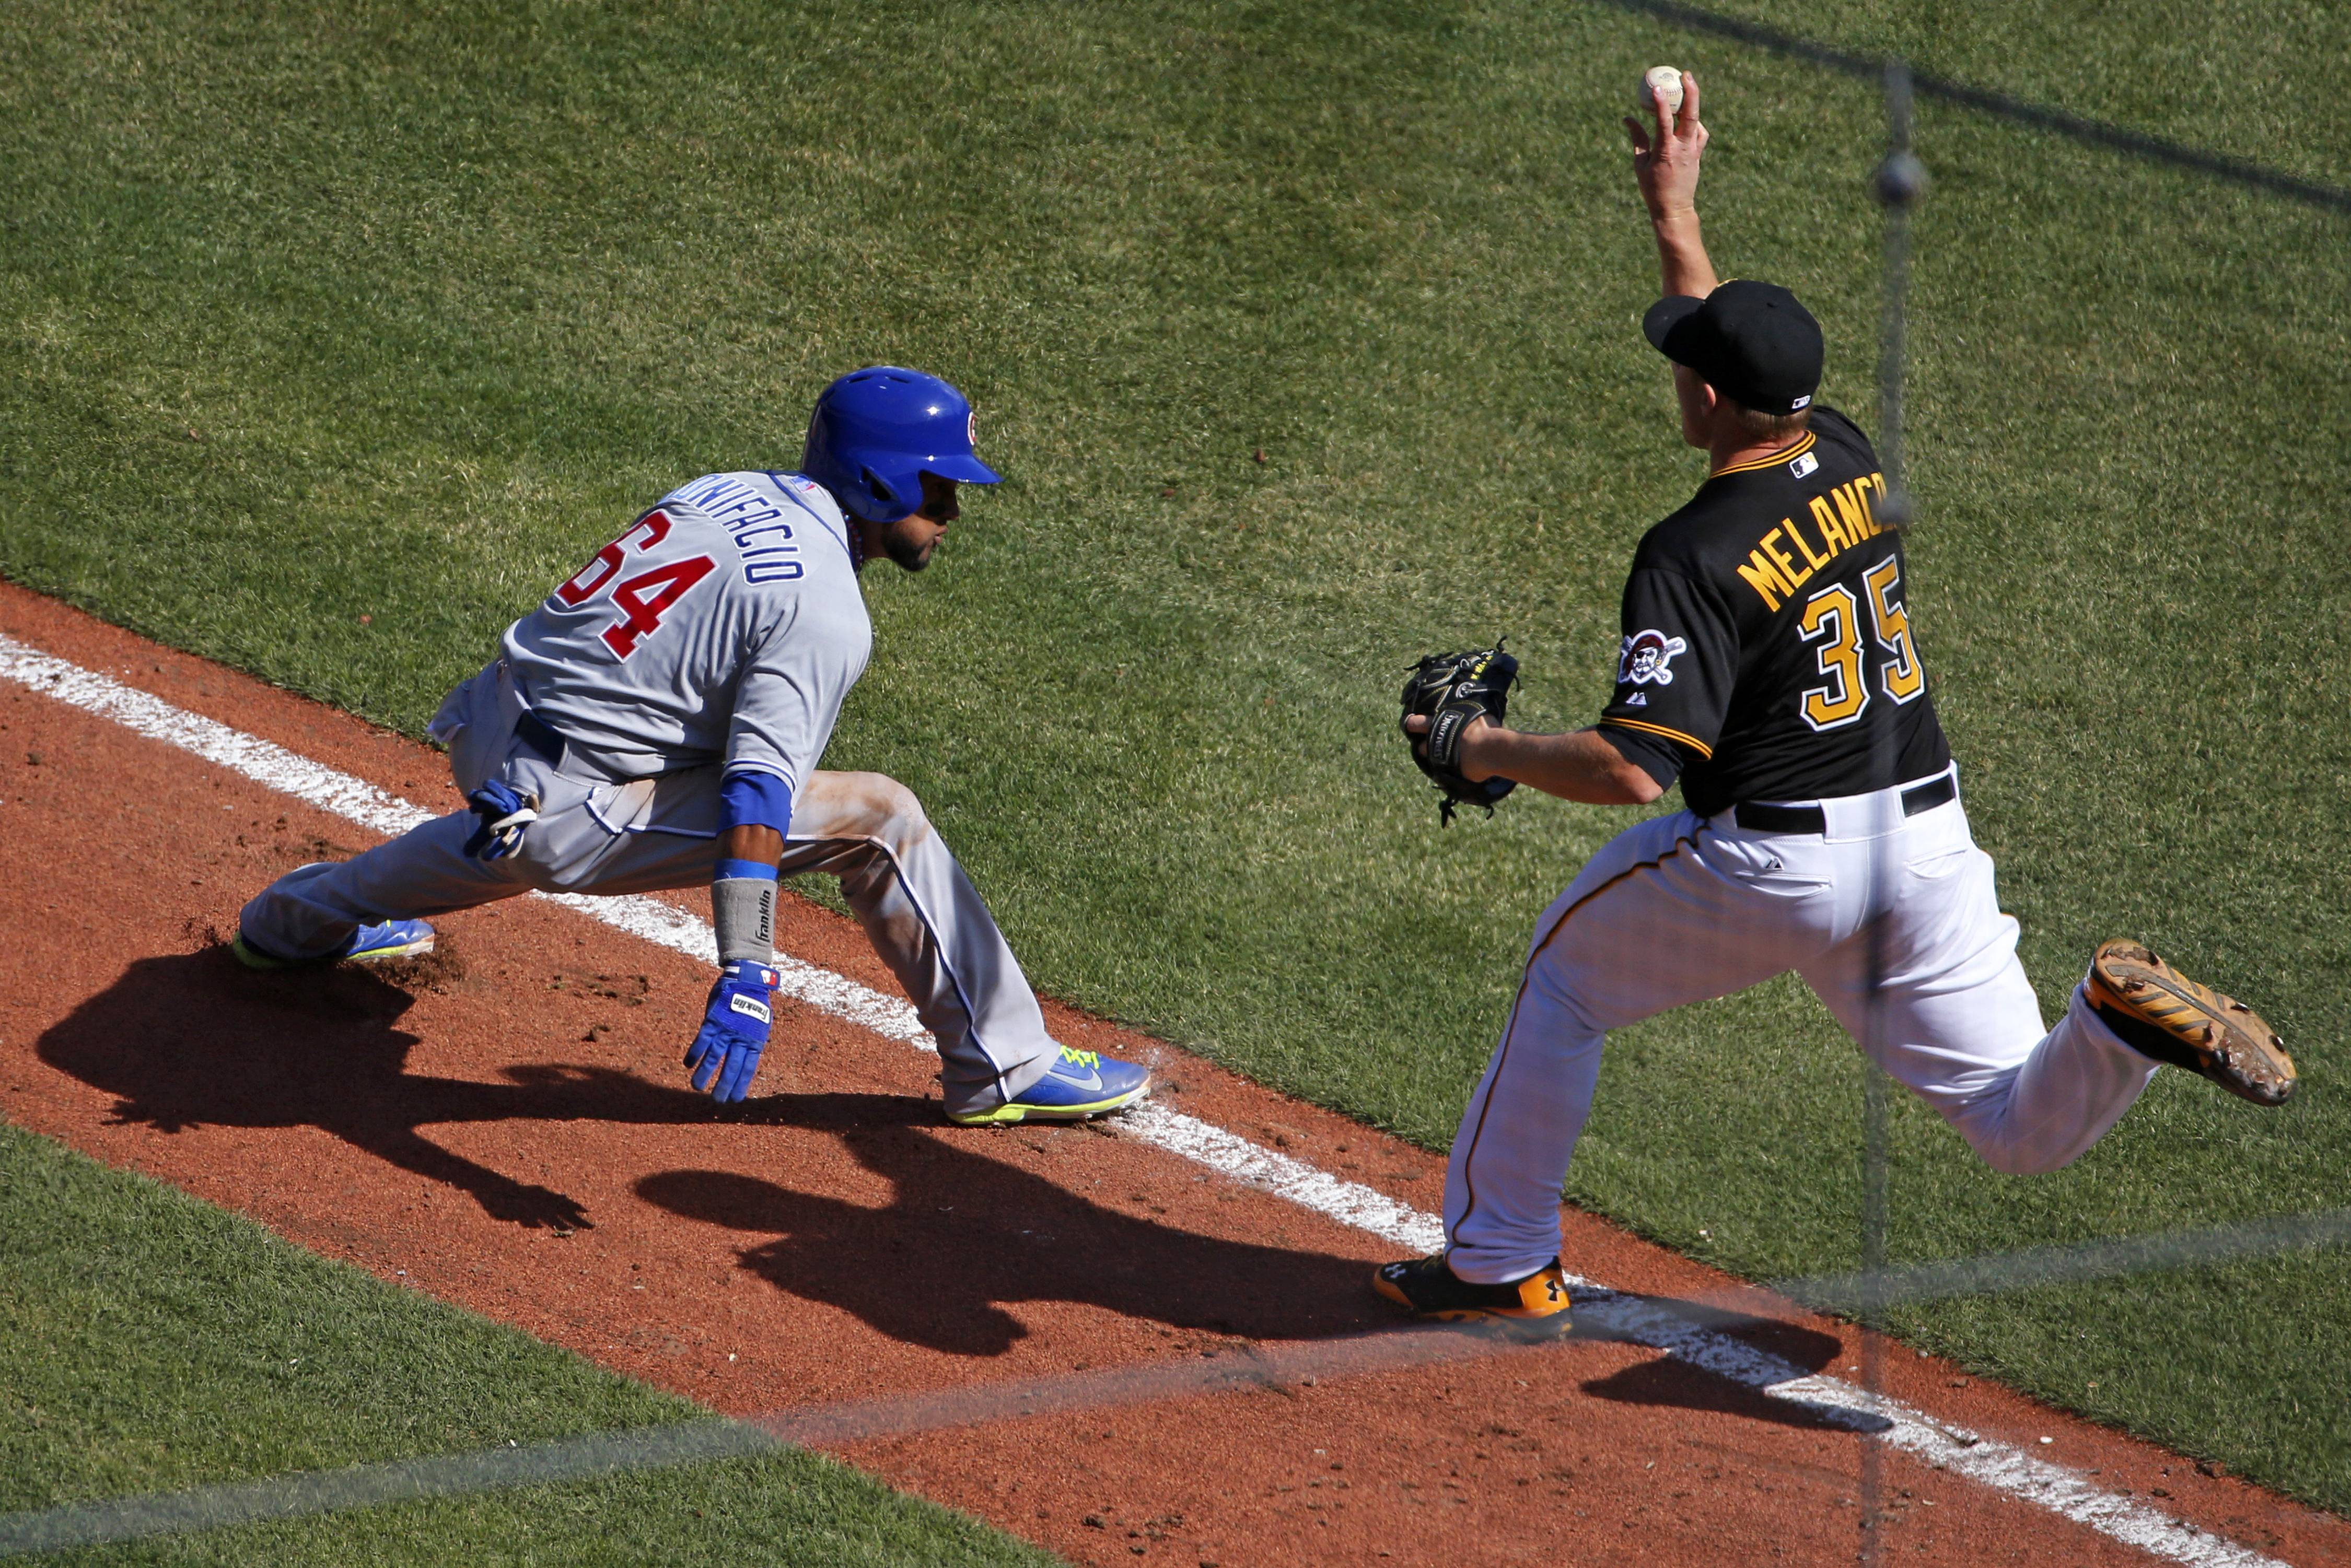 Chicago Cubs' Emilio Bonifacio (64) is caught in a rundown between third and home by Pittsburgh Pirates relief pitcher Mark Melancon (35) during the eighth inning.